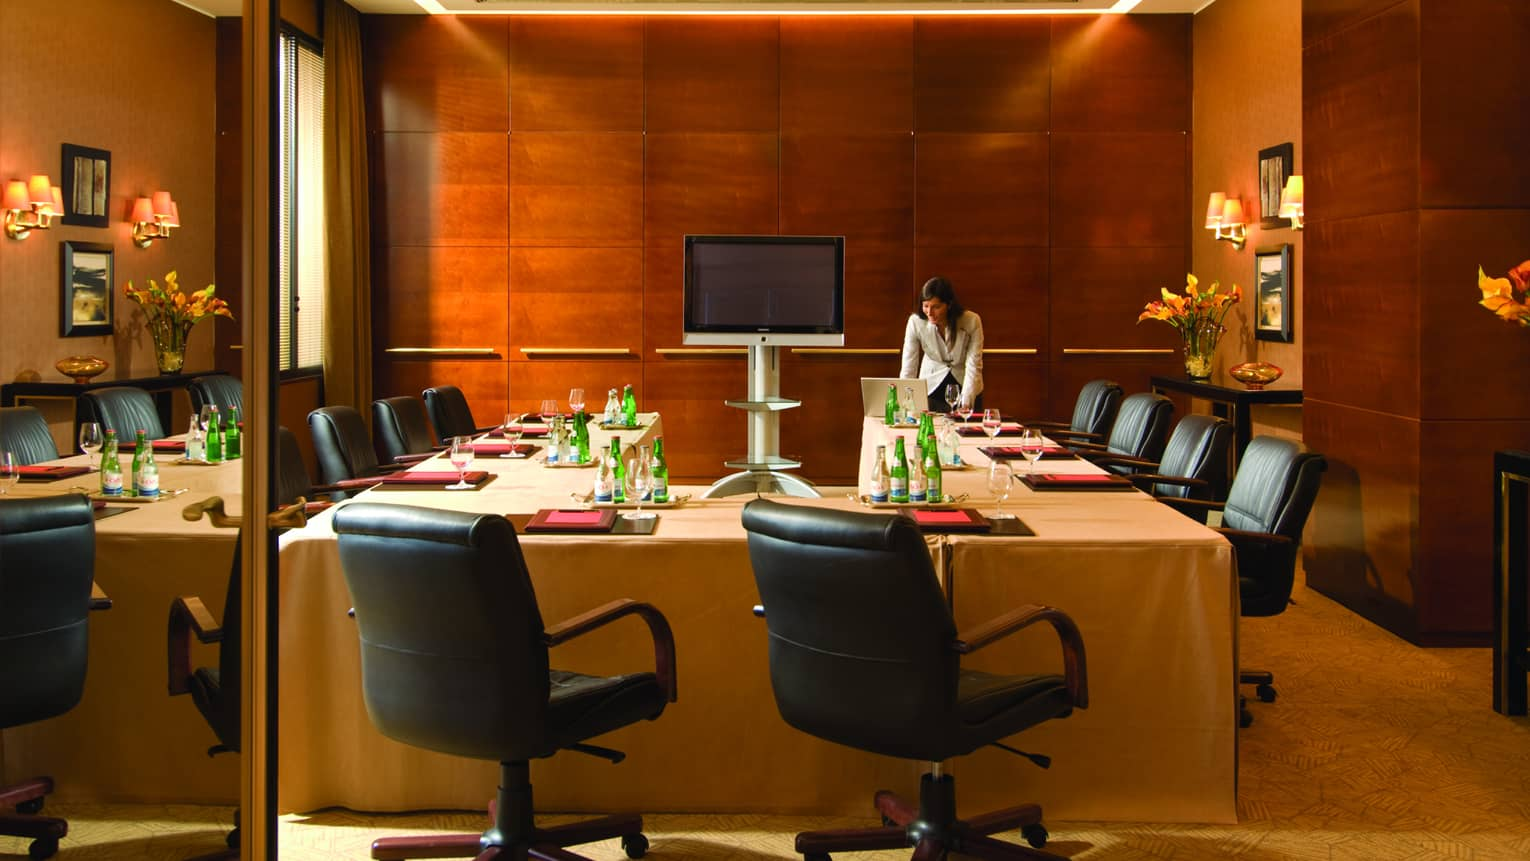 Woman stands in front of U-shaped meeting table set with folders, bottles of water, lined with black office chairs